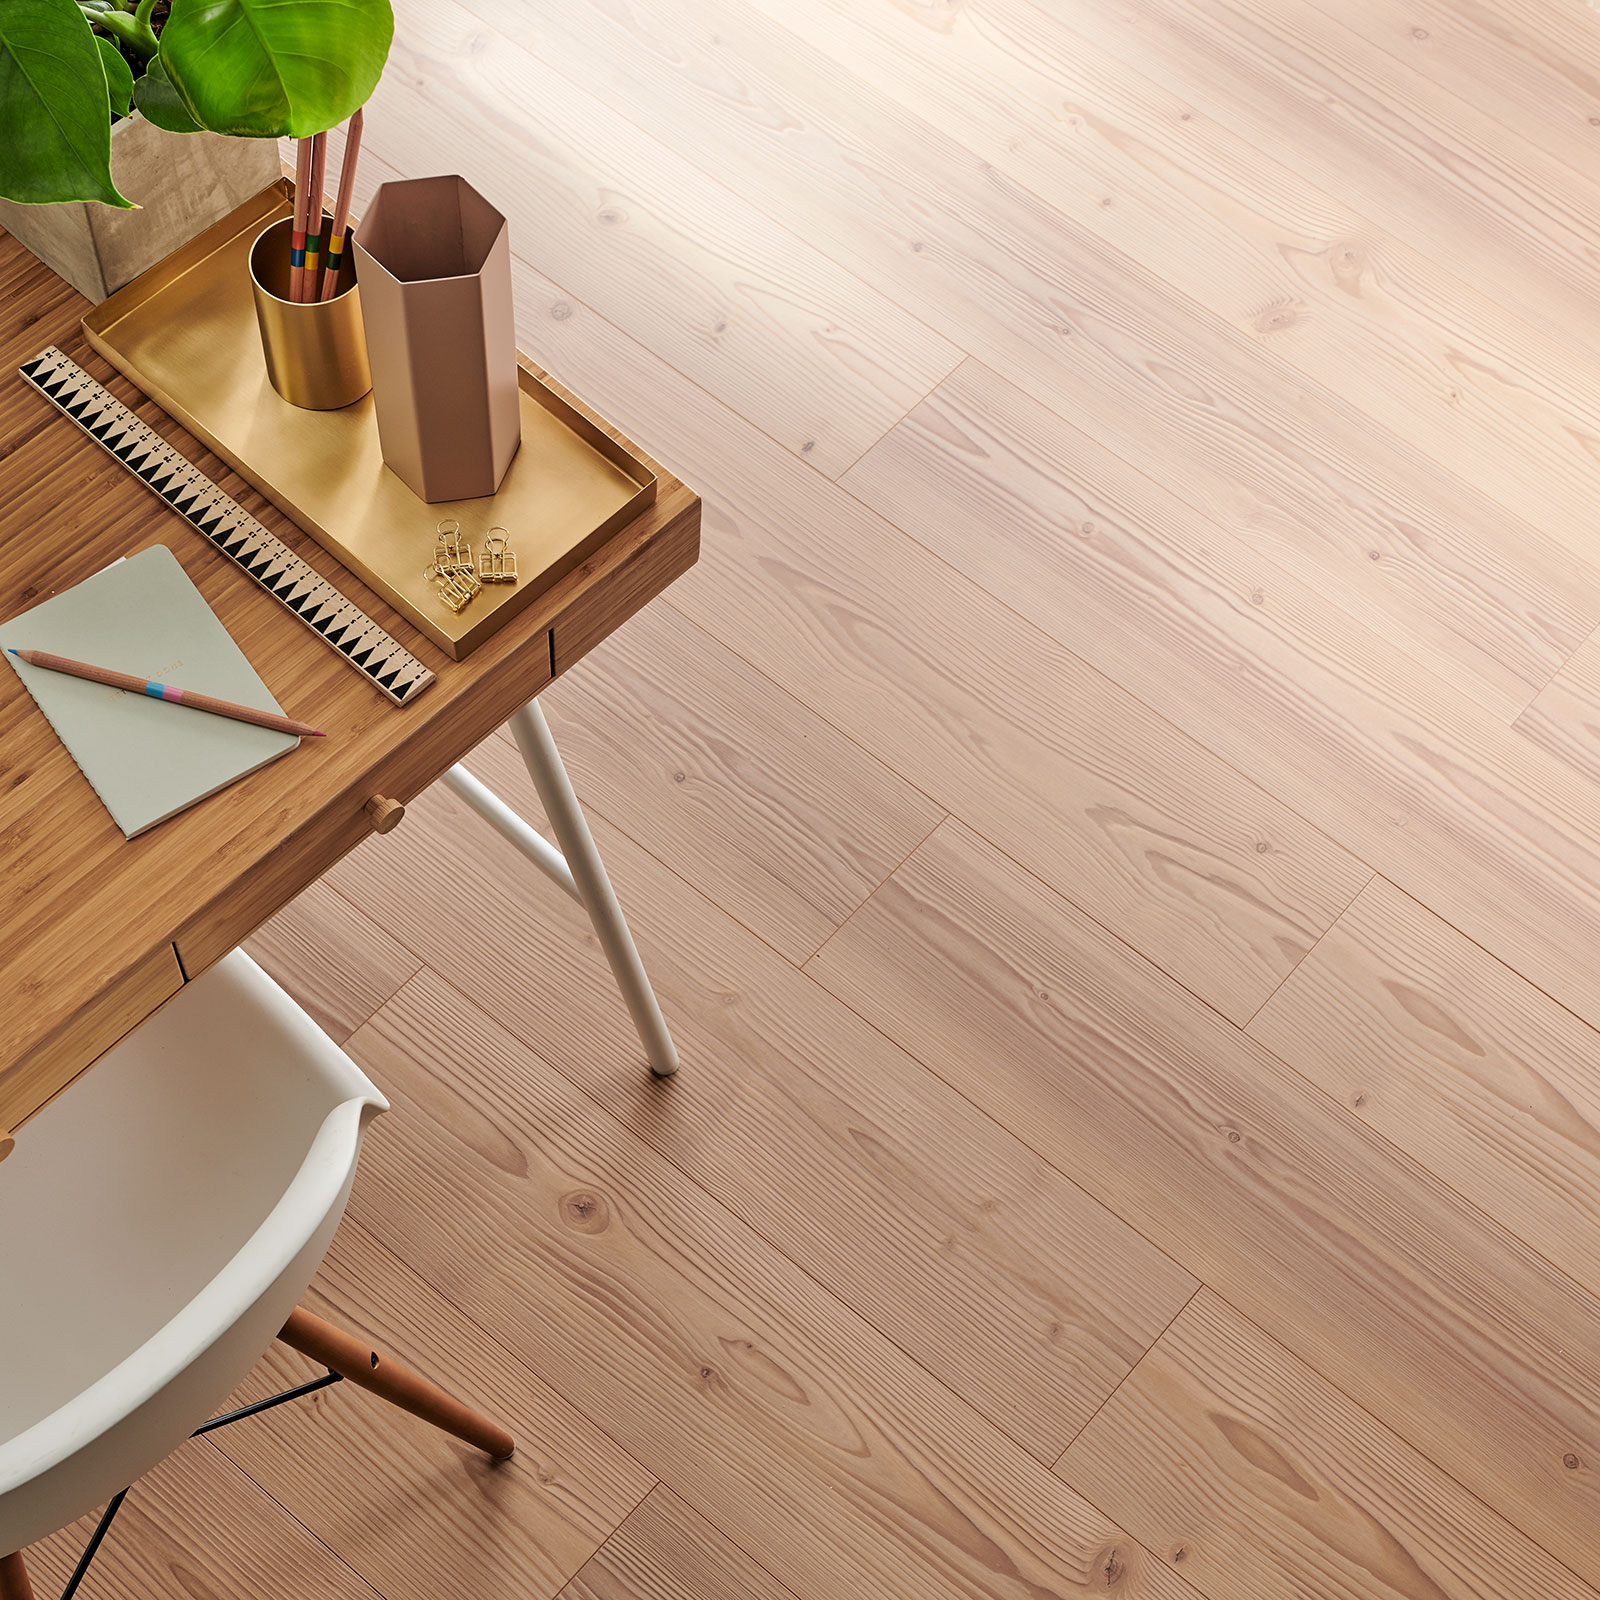 pine laminate flooring in an office